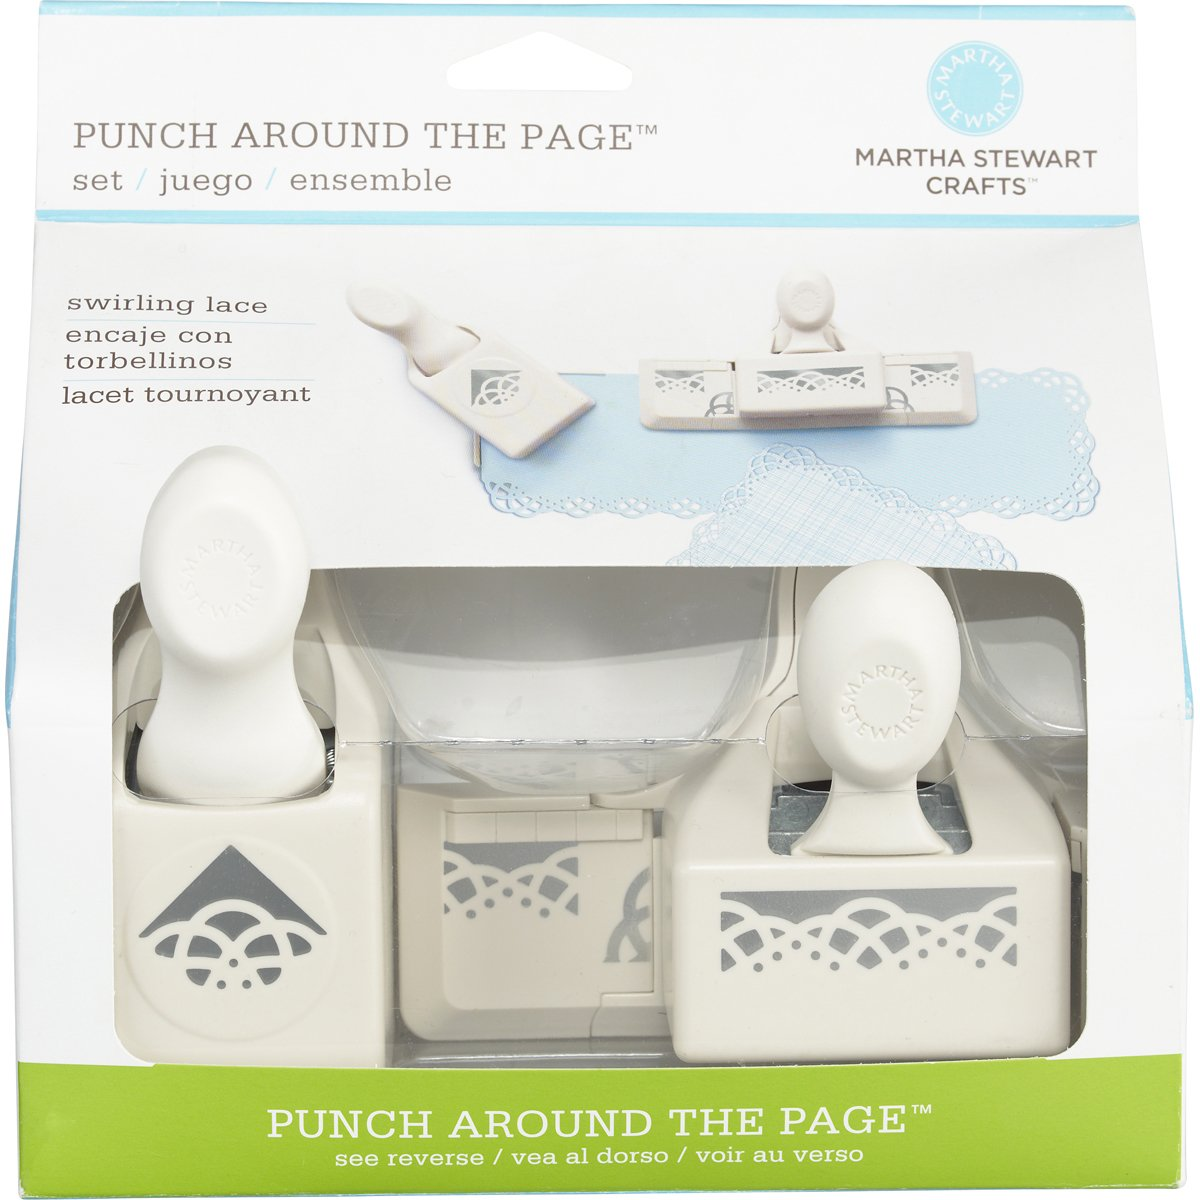 Martha Stewart Crafts Punch Around the Page, Swirling Lace Punch Set